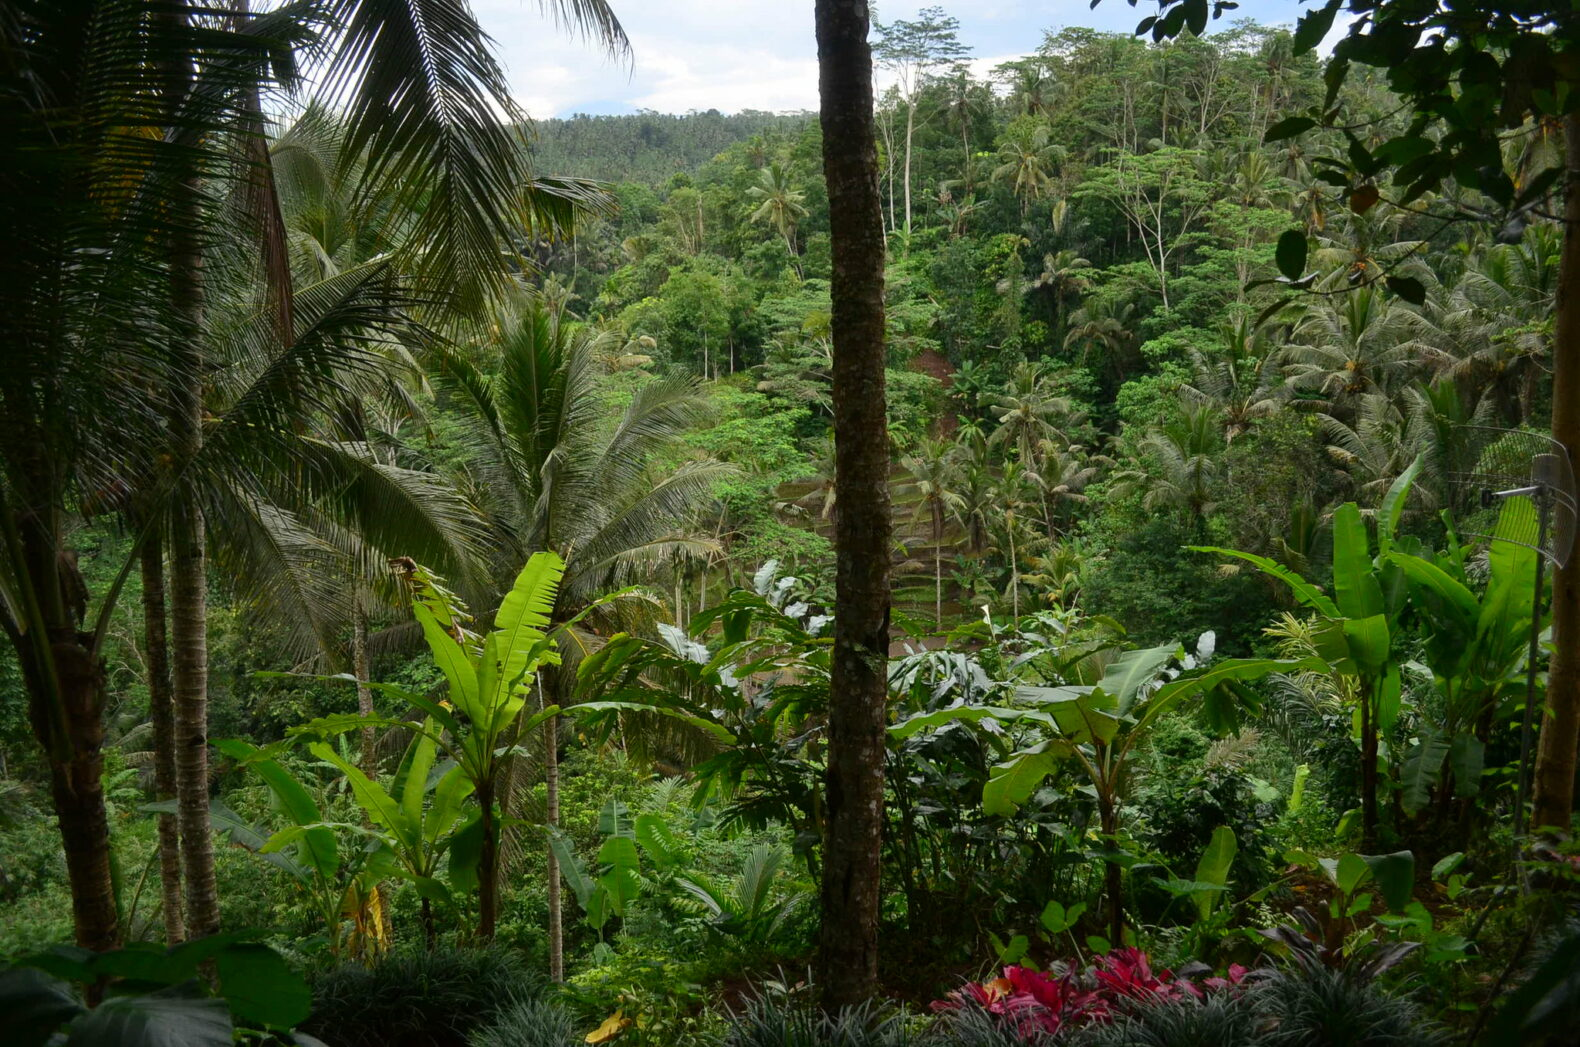 lush tropical forest